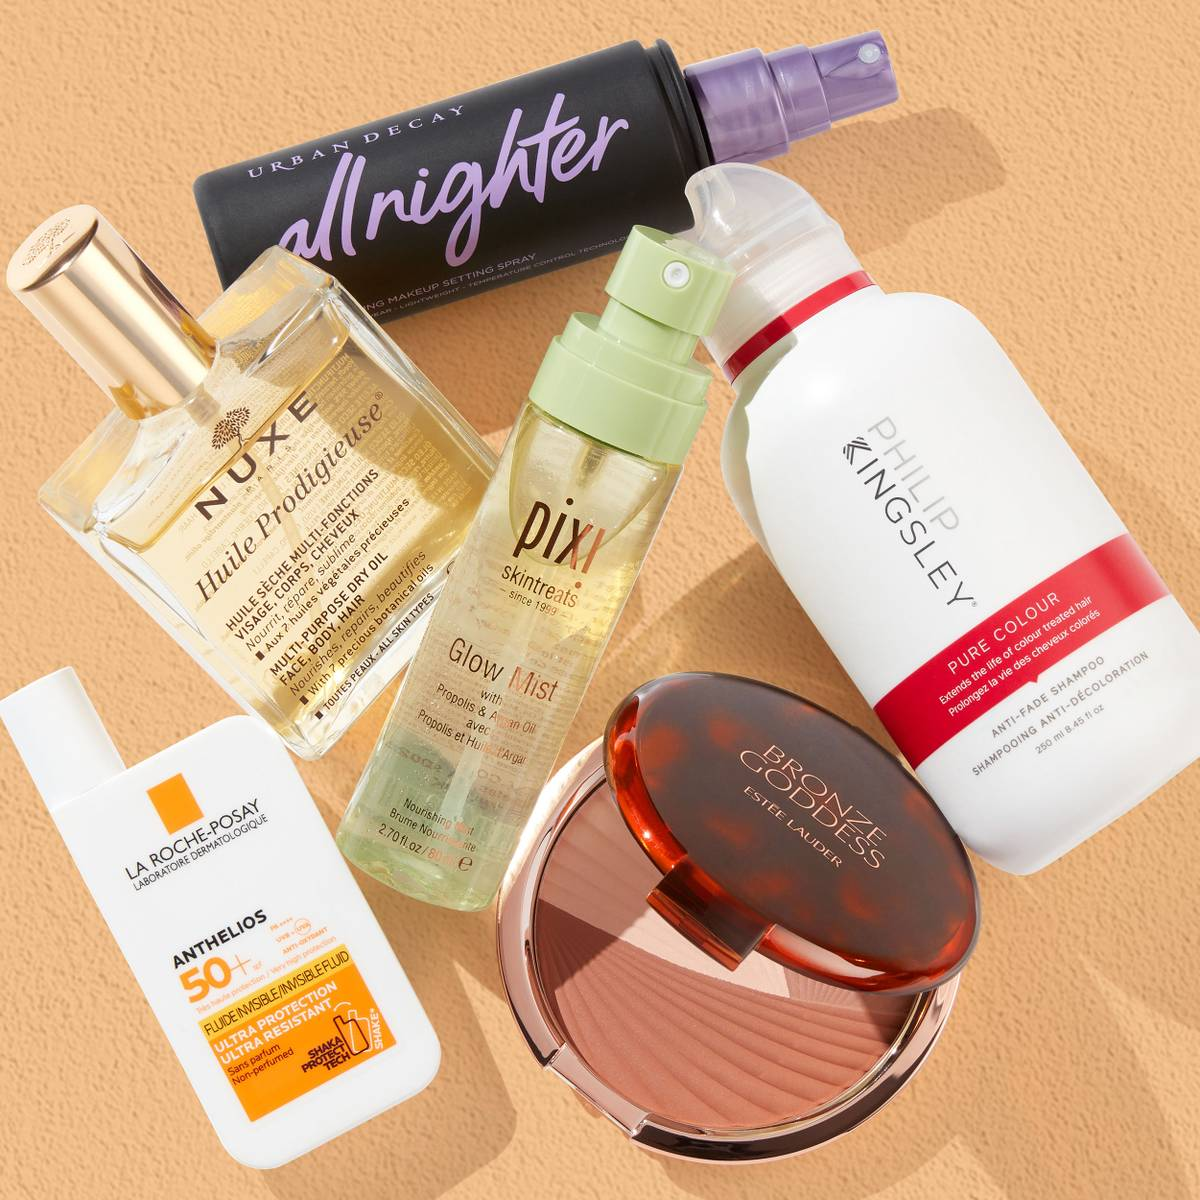 Summer Essentials - From SPF to glowing cosmetics, stock up on our range of sizzling summer essentials.  Plus, enjoy UK FREE Next Day Delivery when you spend £90!